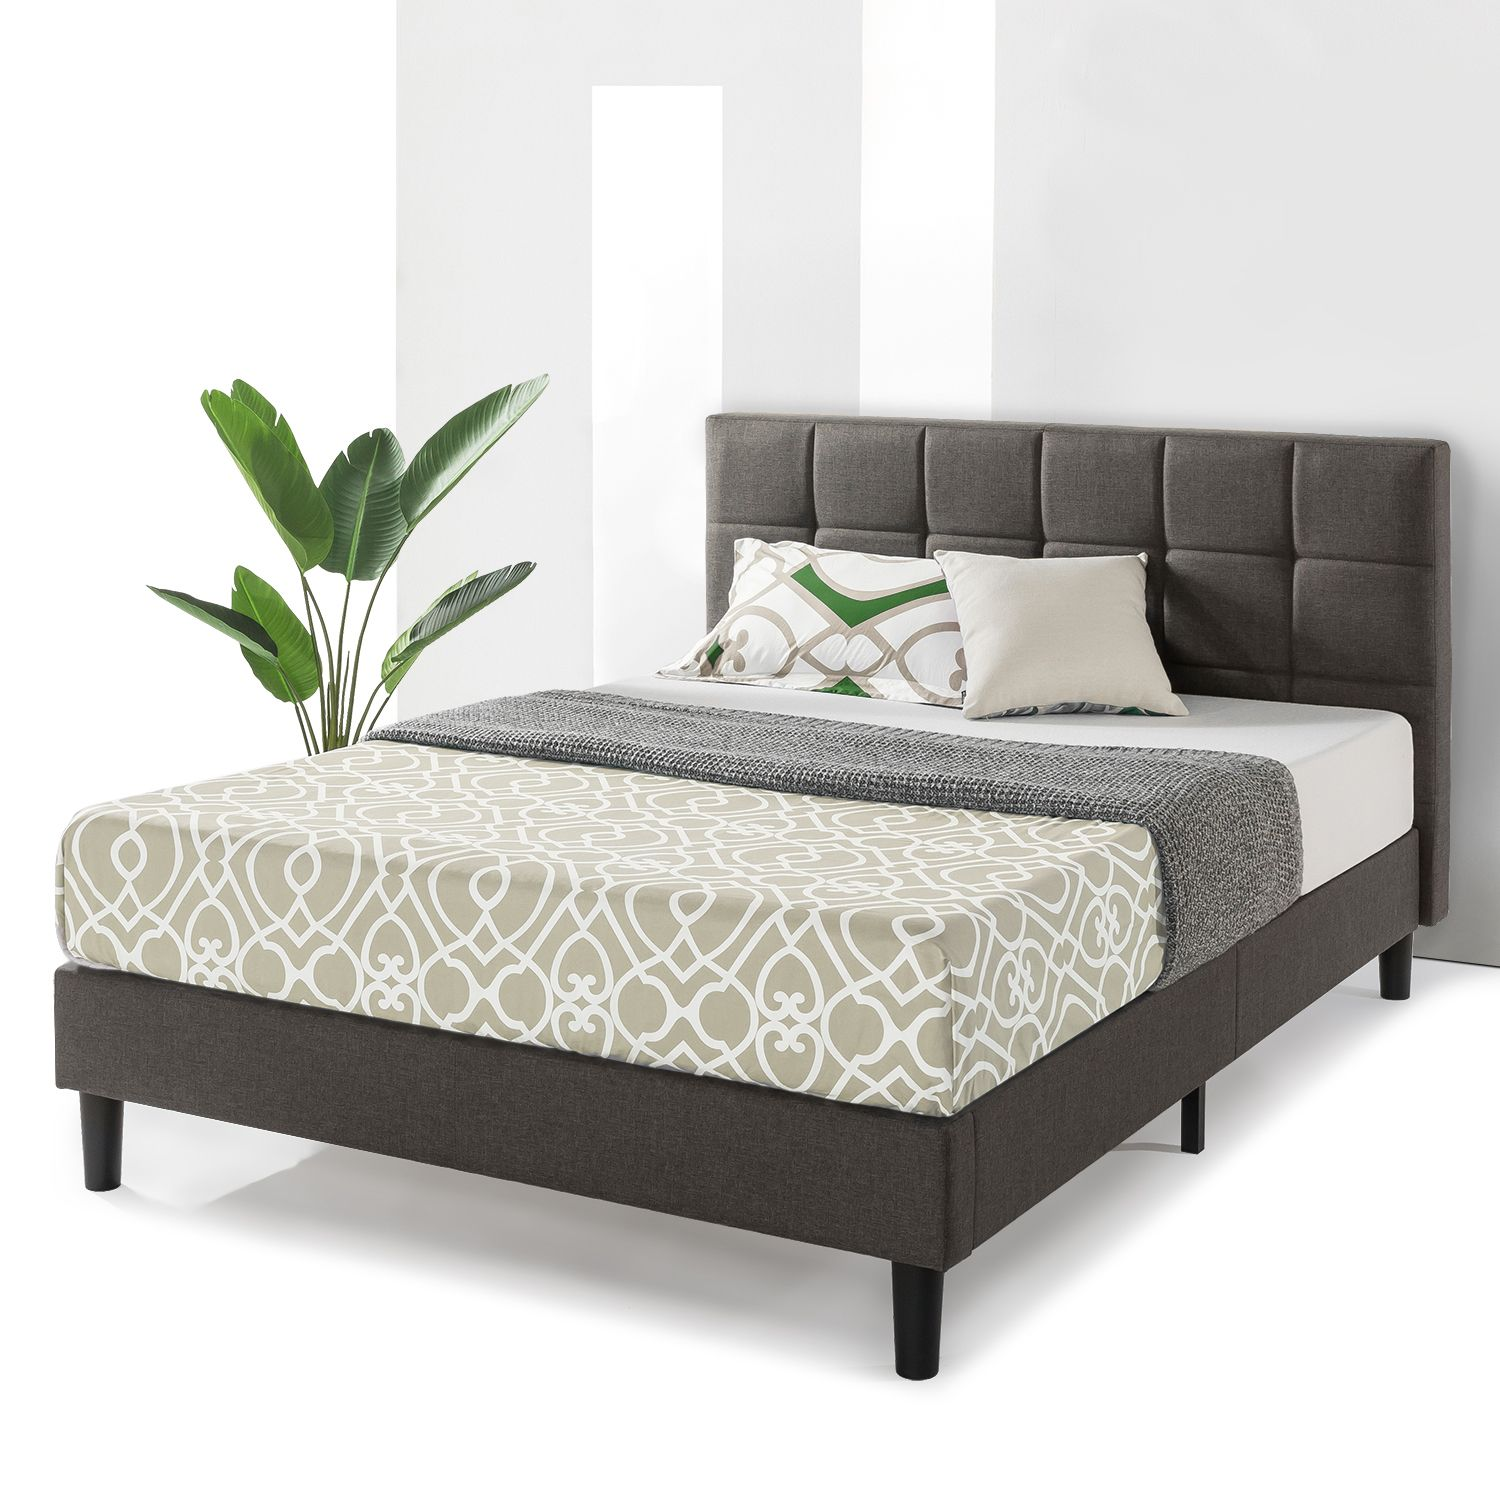 Best Price Mattress Zoe Upholstered Platform Beds With Tufted